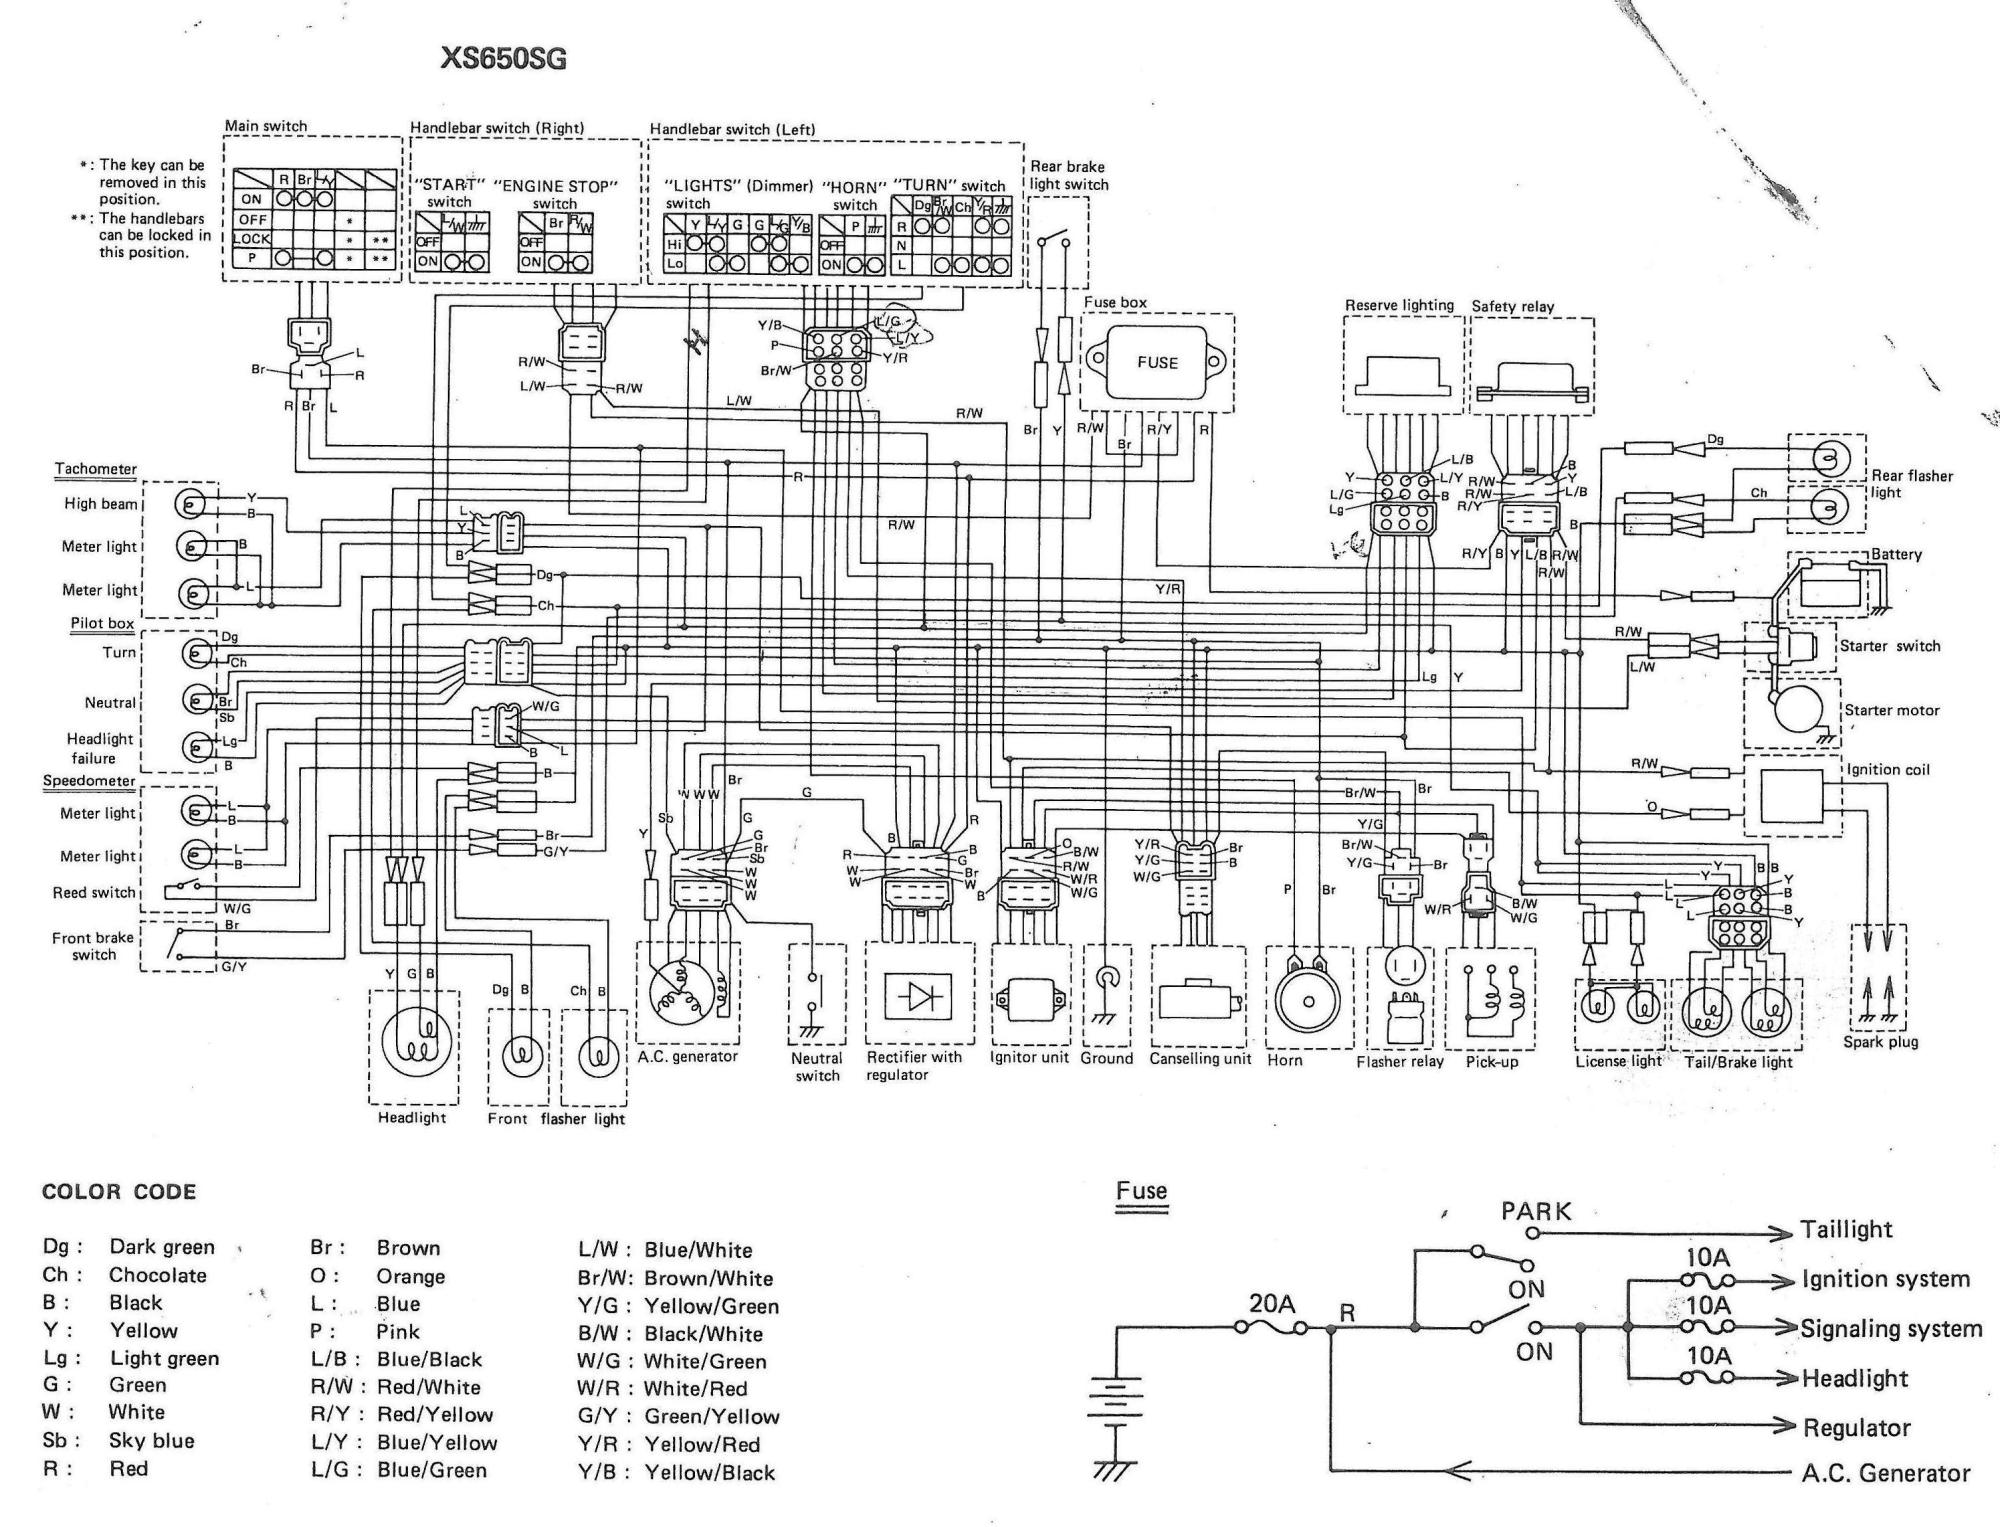 hight resolution of 1981 xs650 rephased wiring diagram wiring library 1981 xs650 rephased wiring diagram